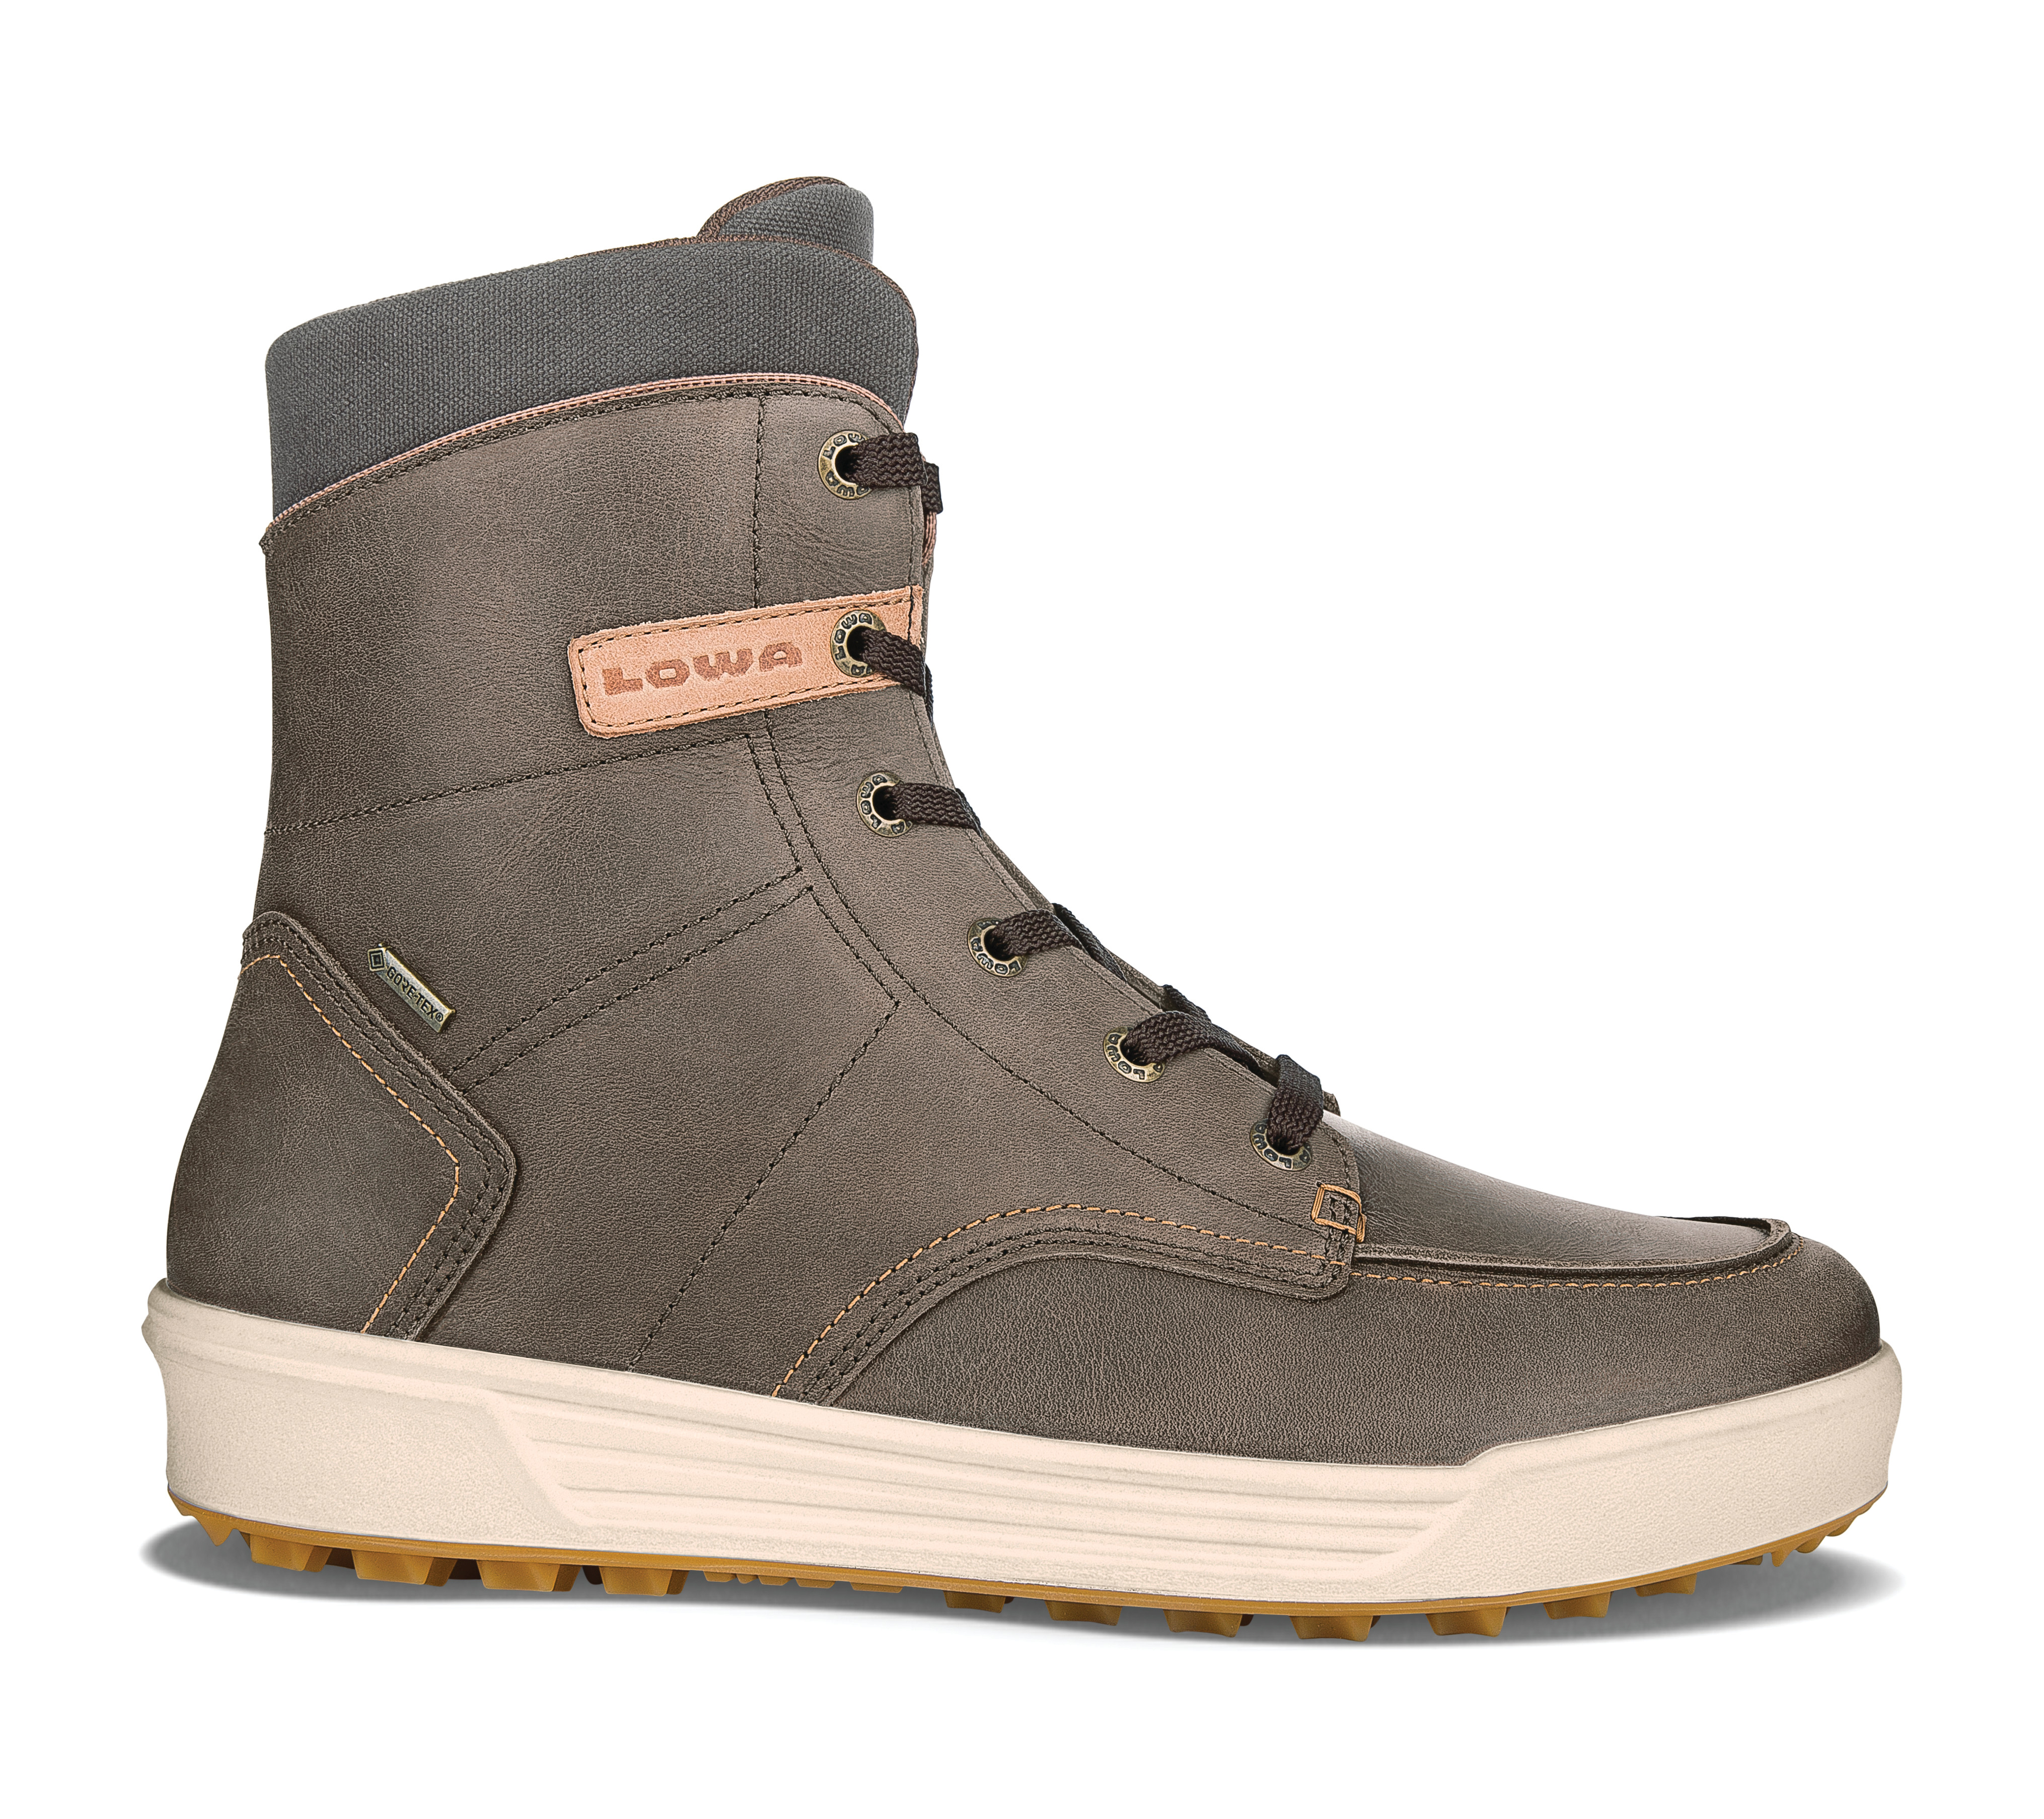 sale usa online arriving newest collection Reviews & Ratings for Lowa Glasgow II GTX Mid Winter Boot - Men's